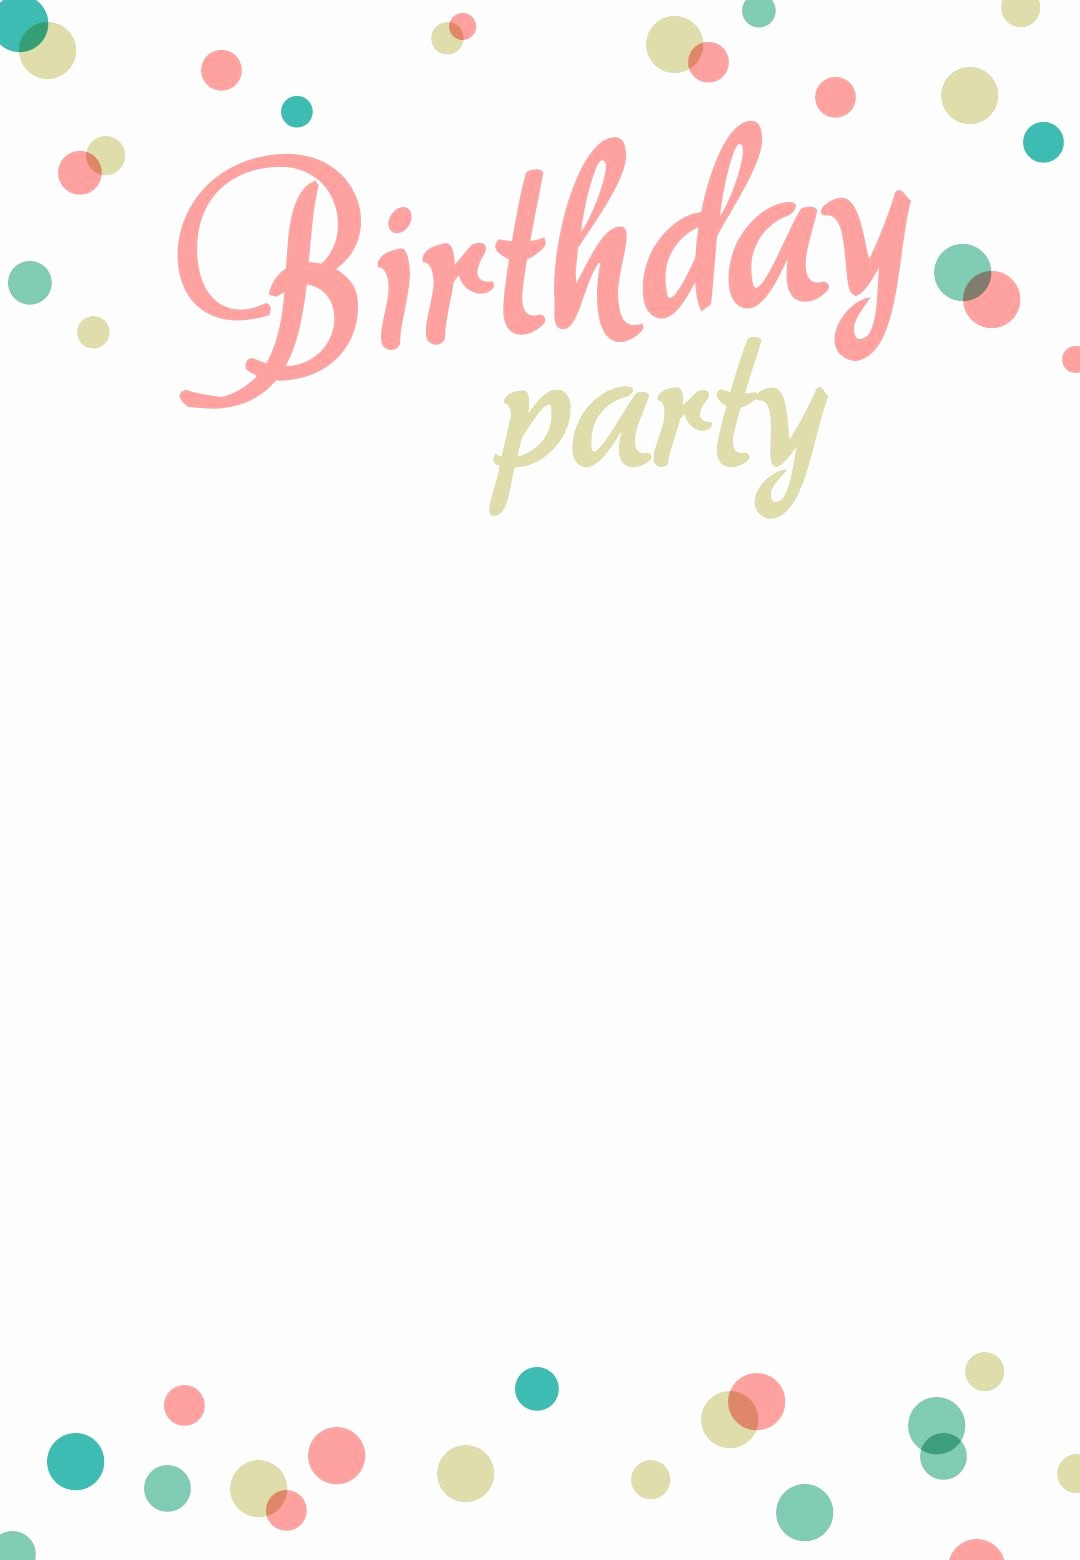 Birthday Invitation Card Template Free Best Of Birthday Party Invitation Free Printable